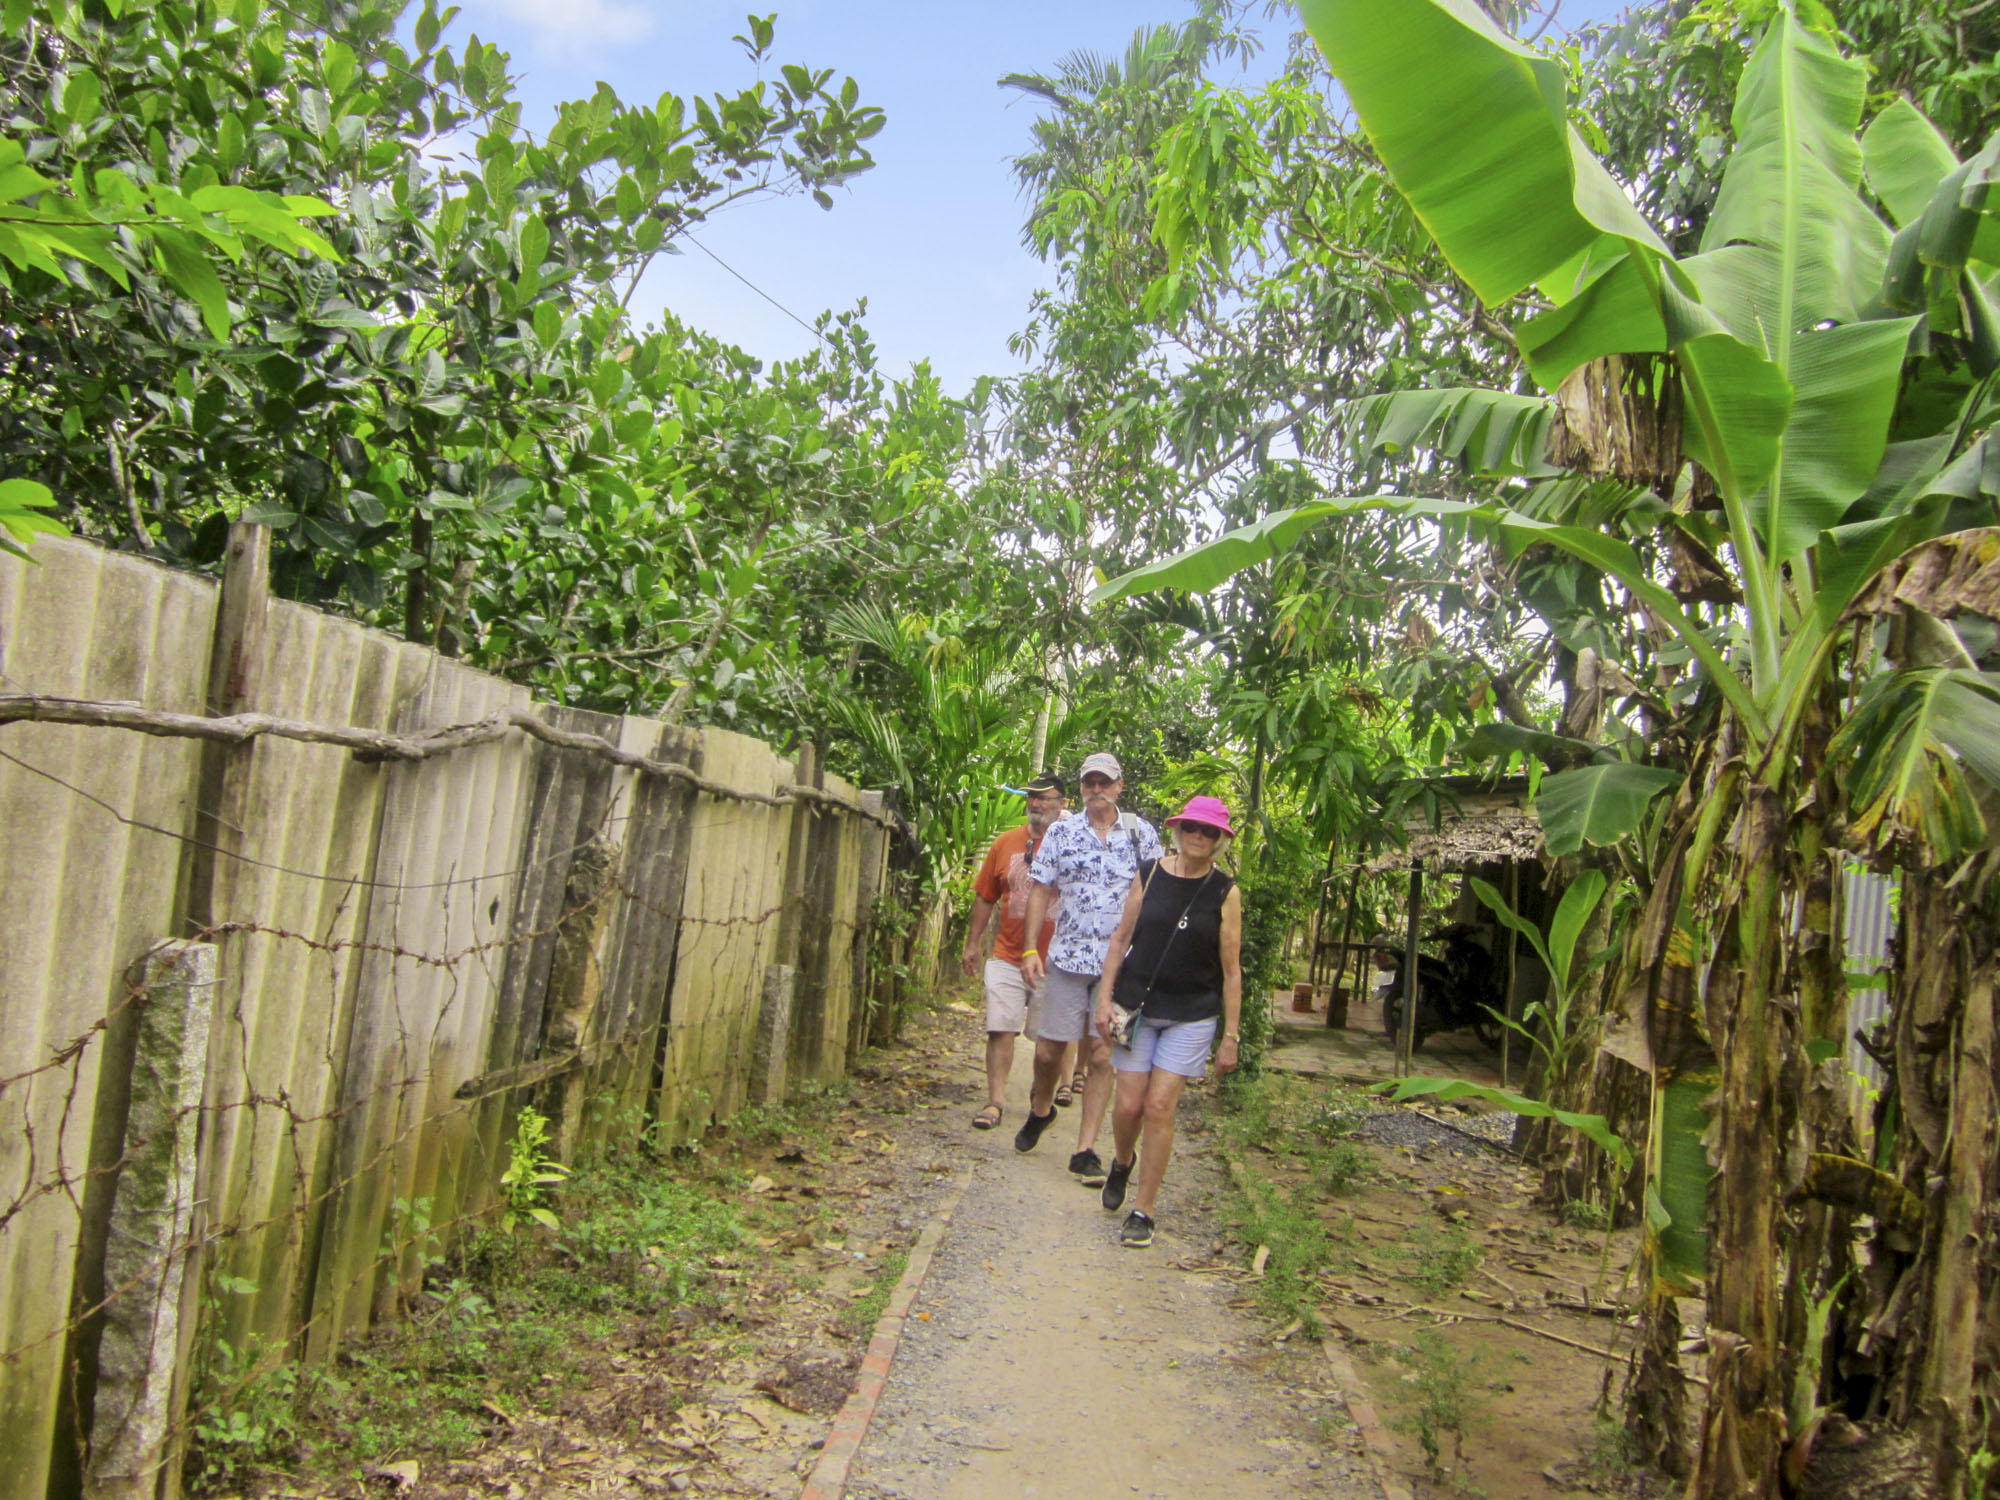 Best time to visit Mekong delta is dry season